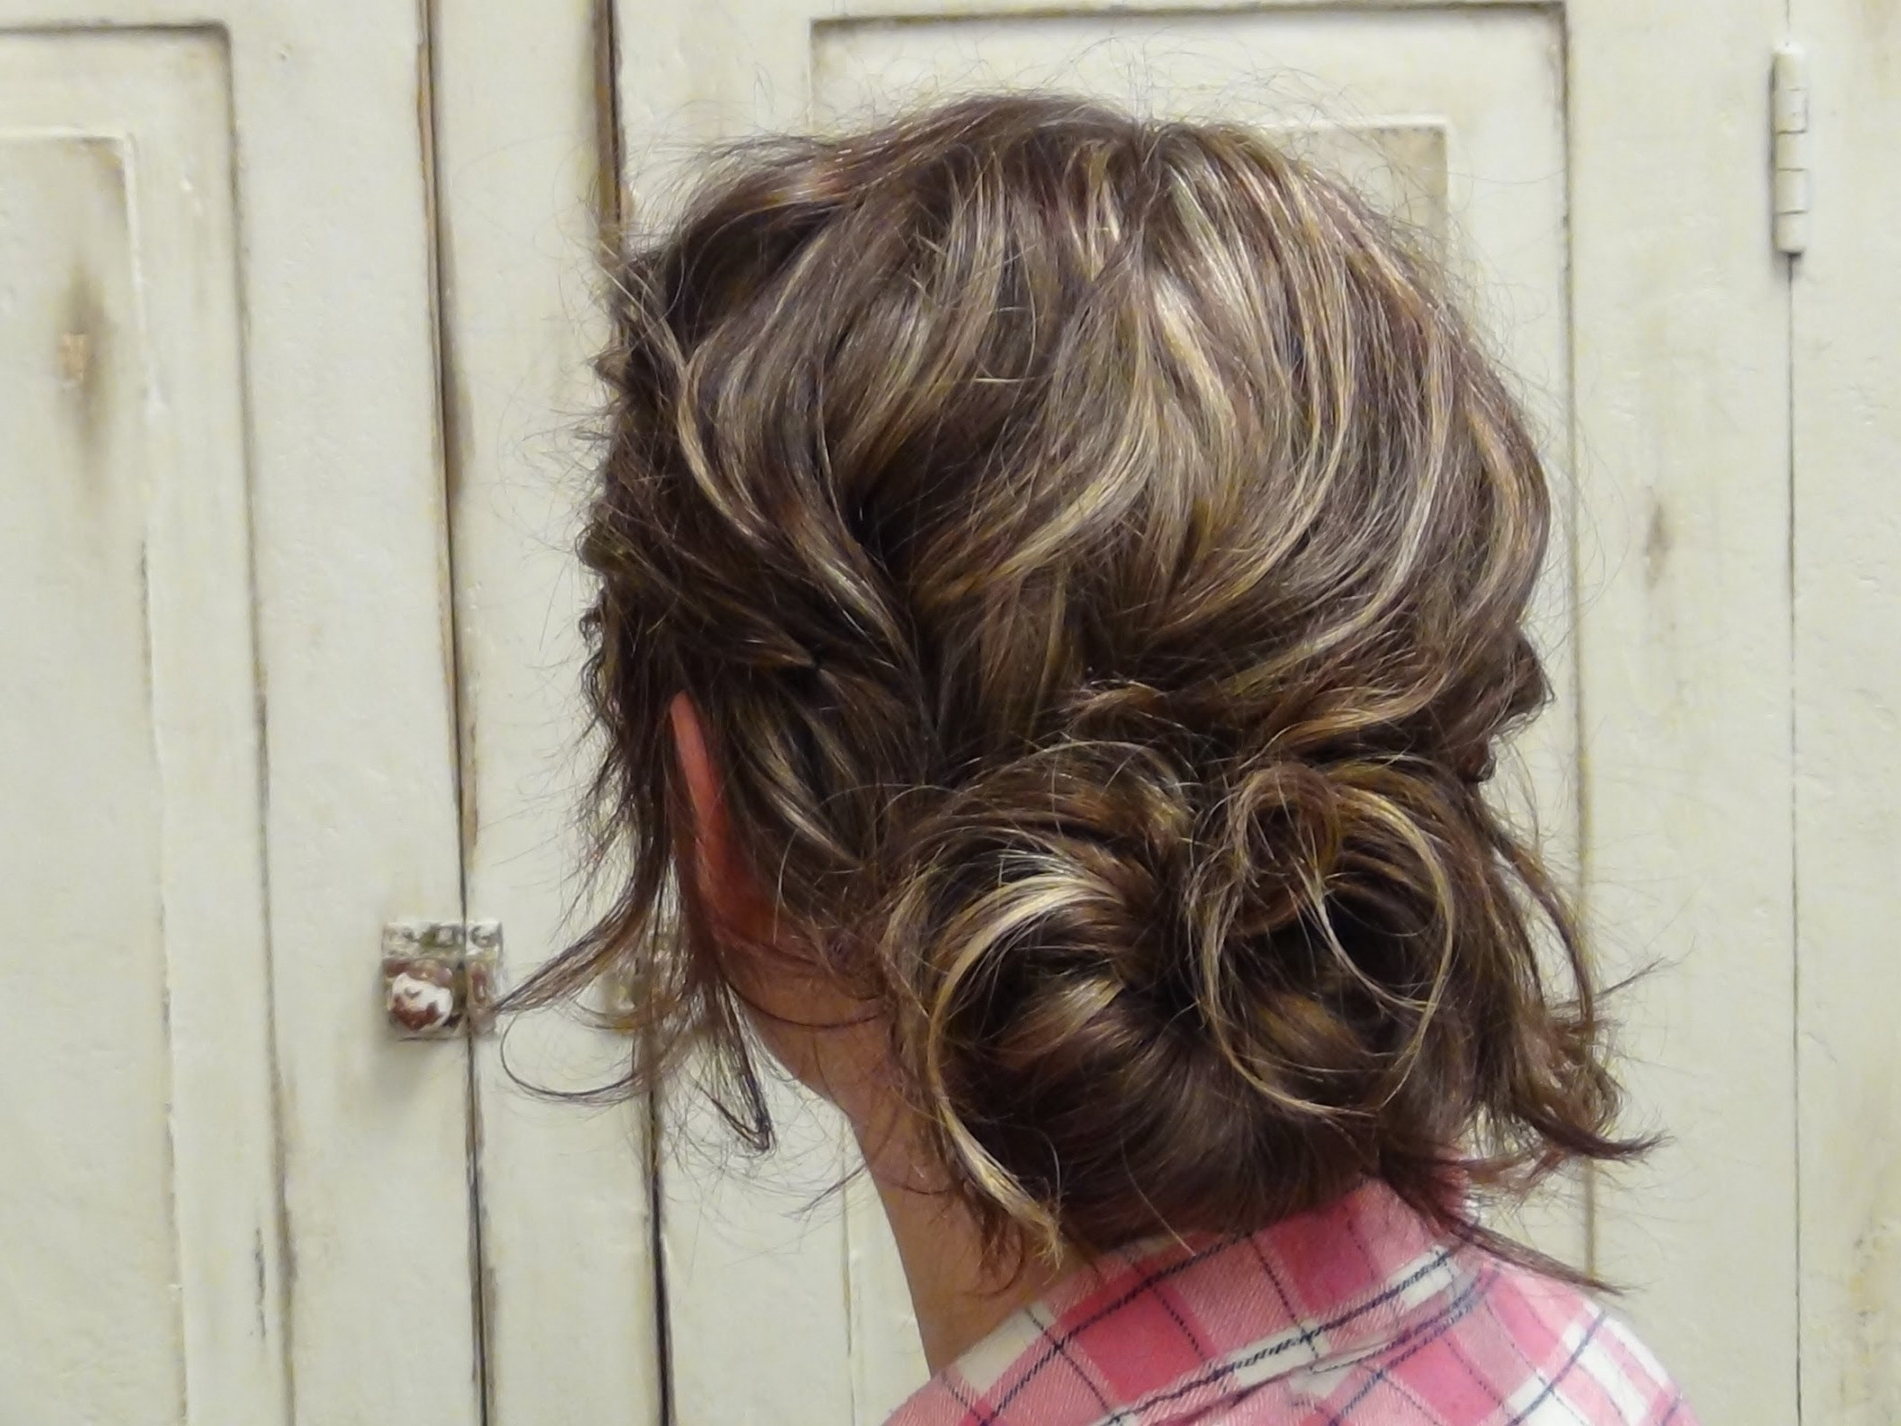 How To Style Cute Low Messy Bun Updo Hairstyles – Youtube | Latest In Messy Bun Updo Hairstyles (View 6 of 15)